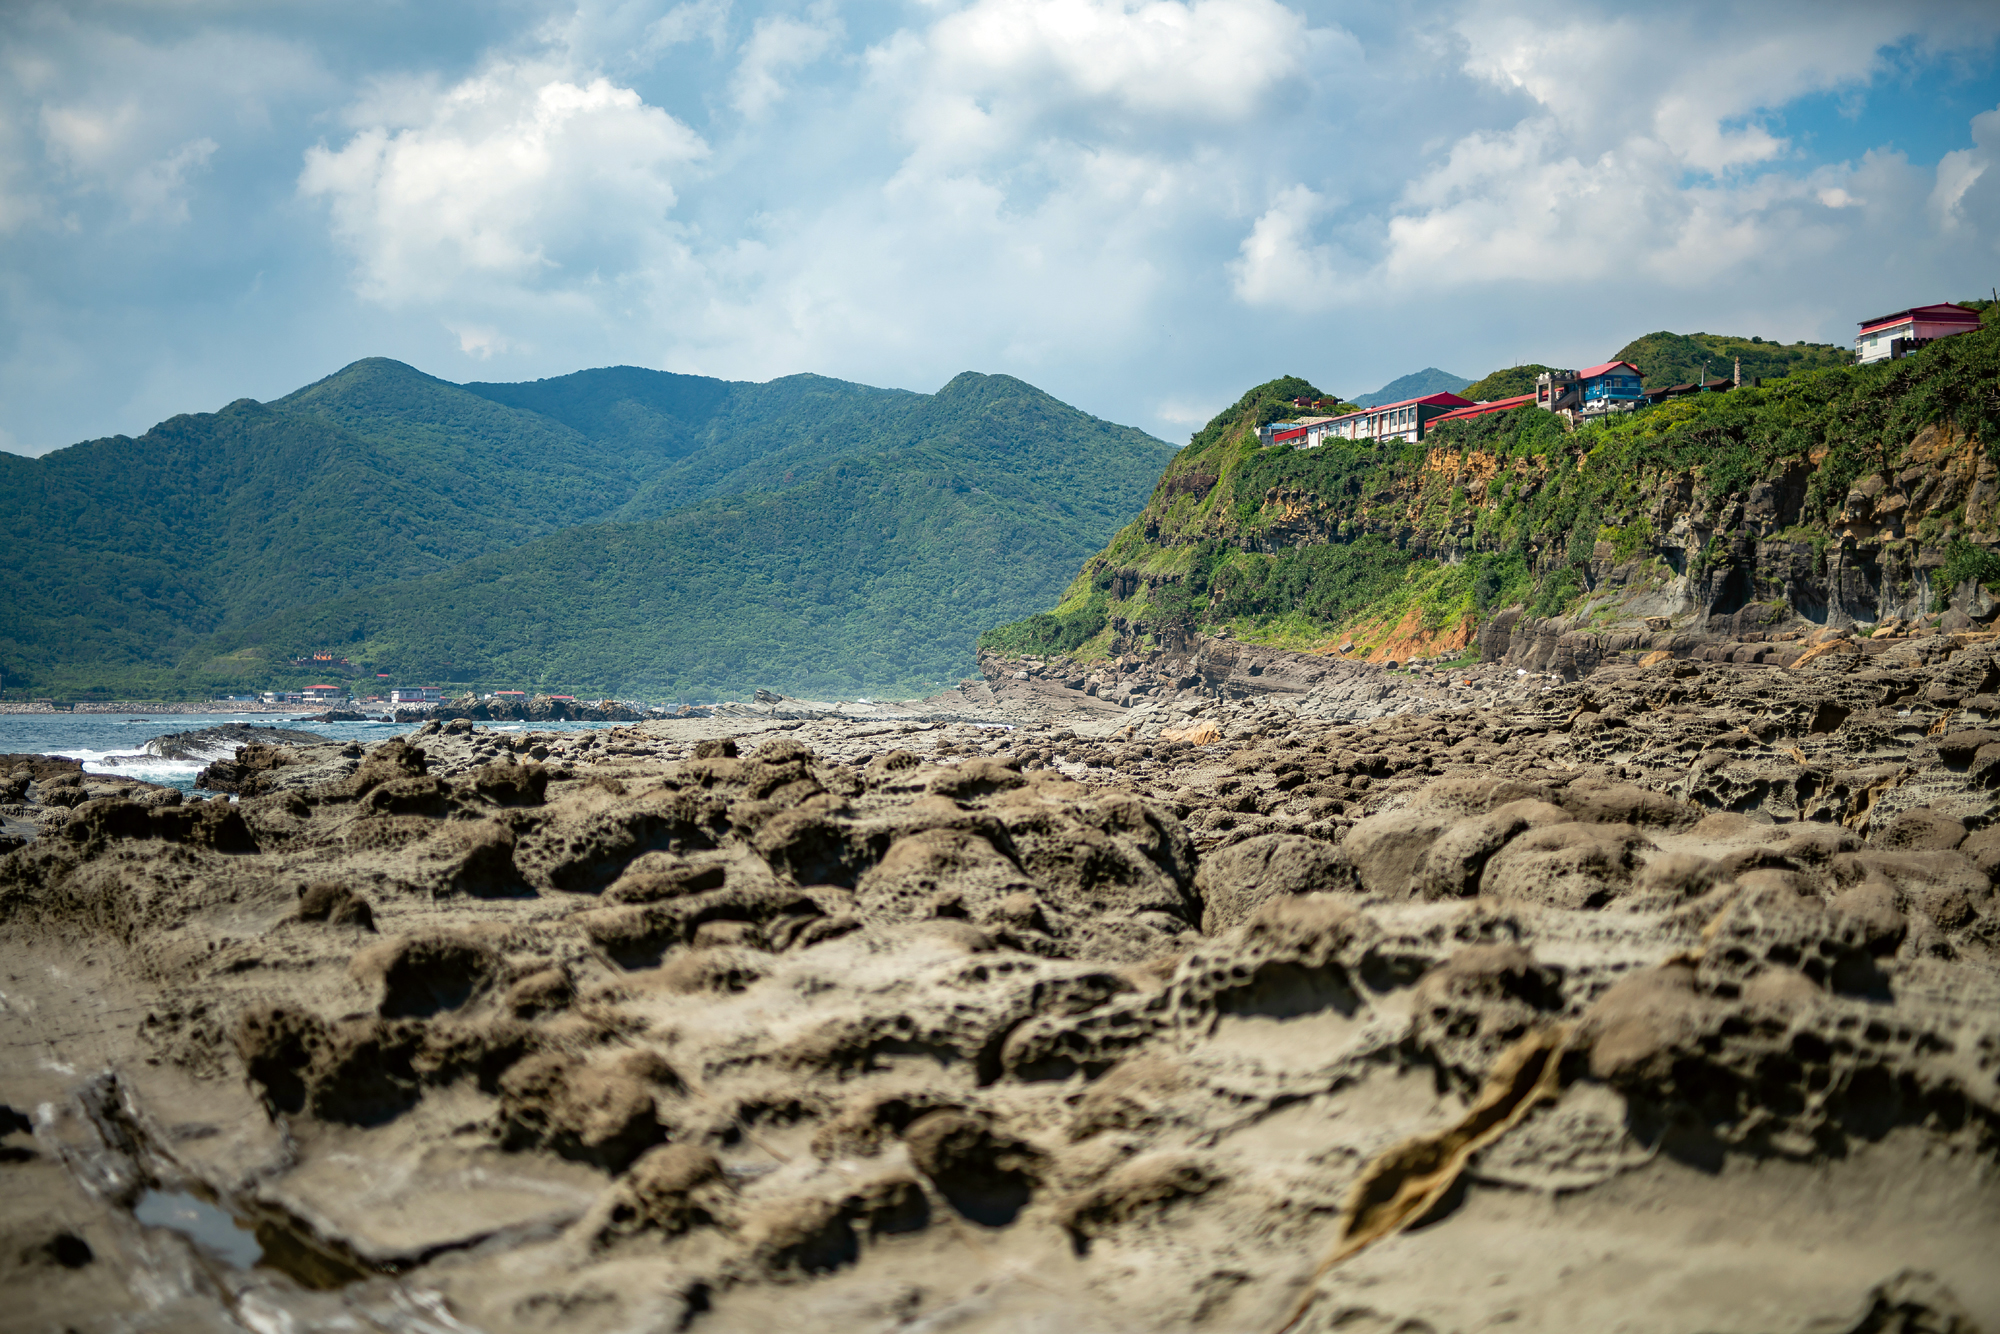 Bitou Cape marks the boundary between the East China Sea and the Pacific Ocean. Bi­tou Elementary School sits midway up the mountainous landscape. It is Taiwan's northern­most elementary school that faces the Pacific. (photo by Lin Min-hsuan)